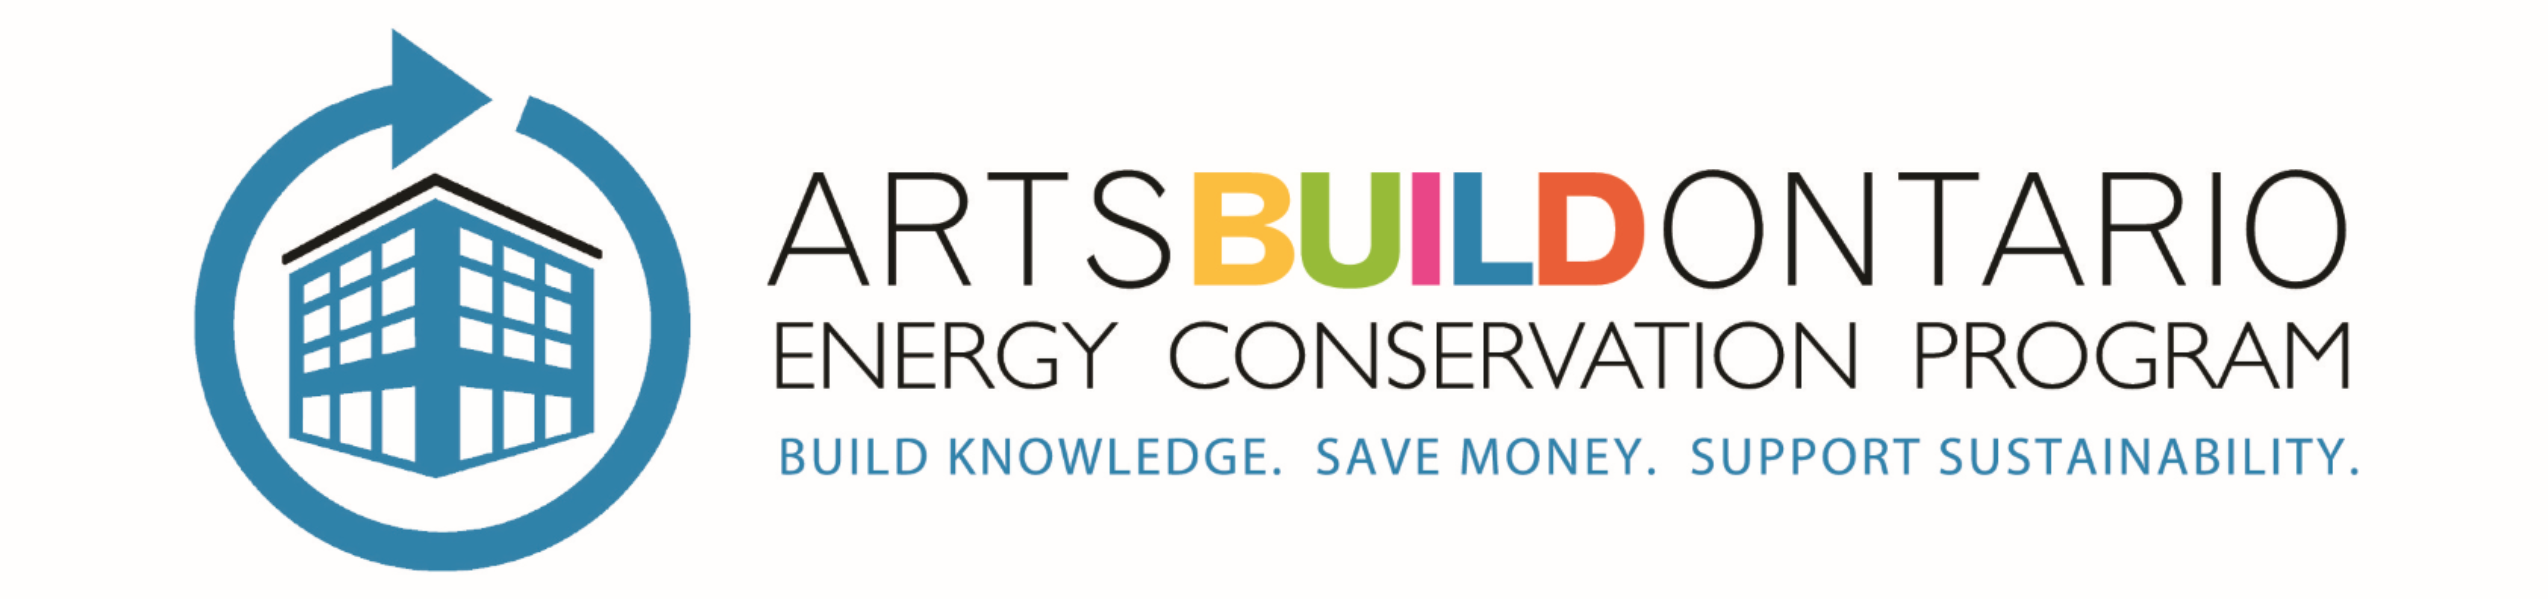 energy-conservation-banner